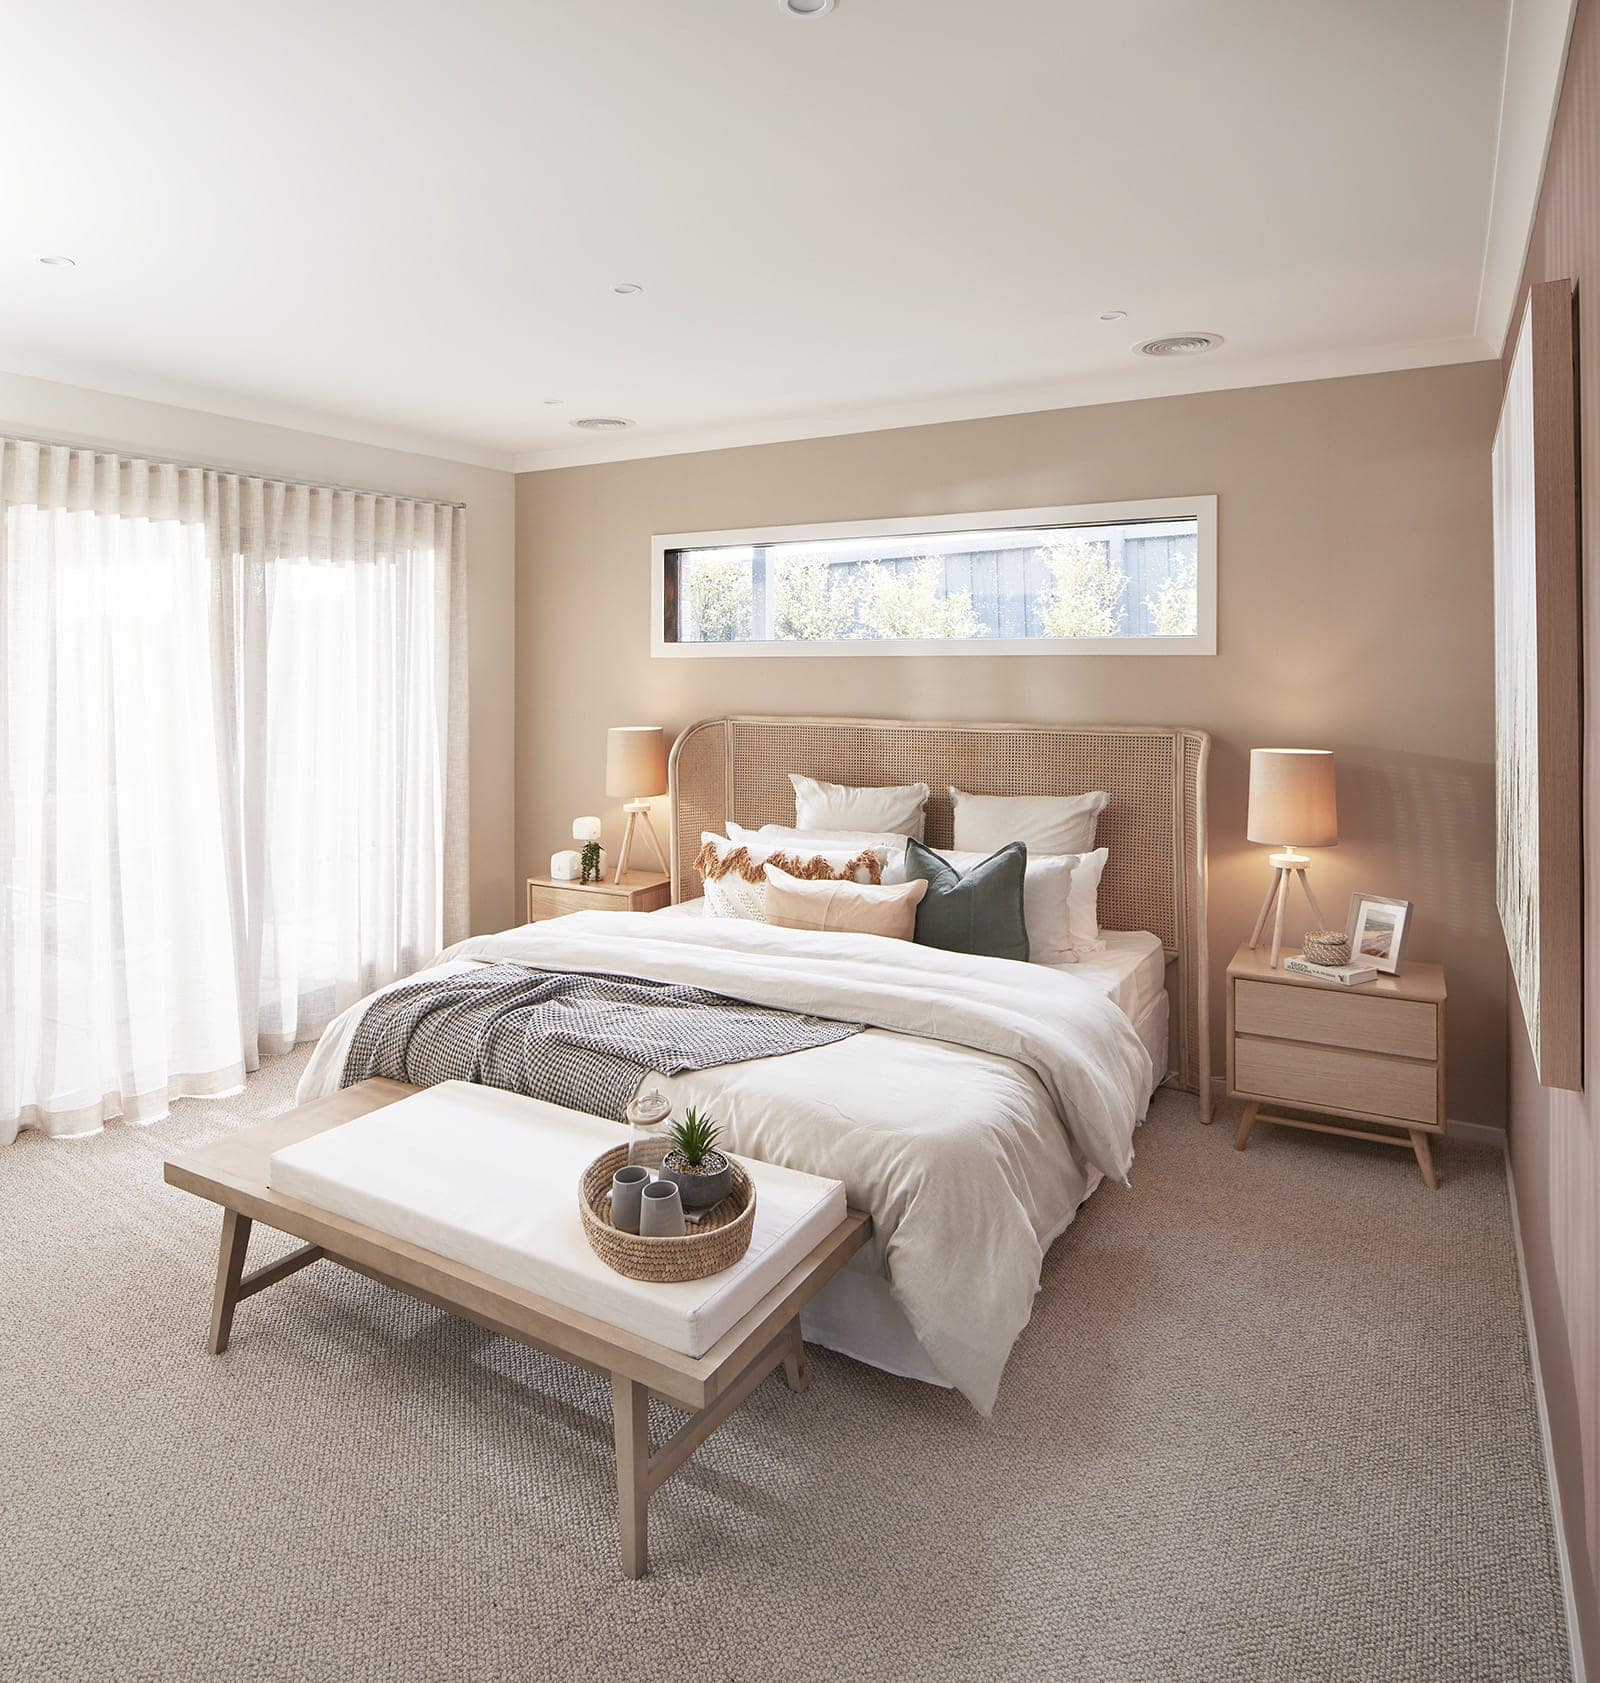 energy efficient home designs bedroom with bohemian headboard and white and beige bedding